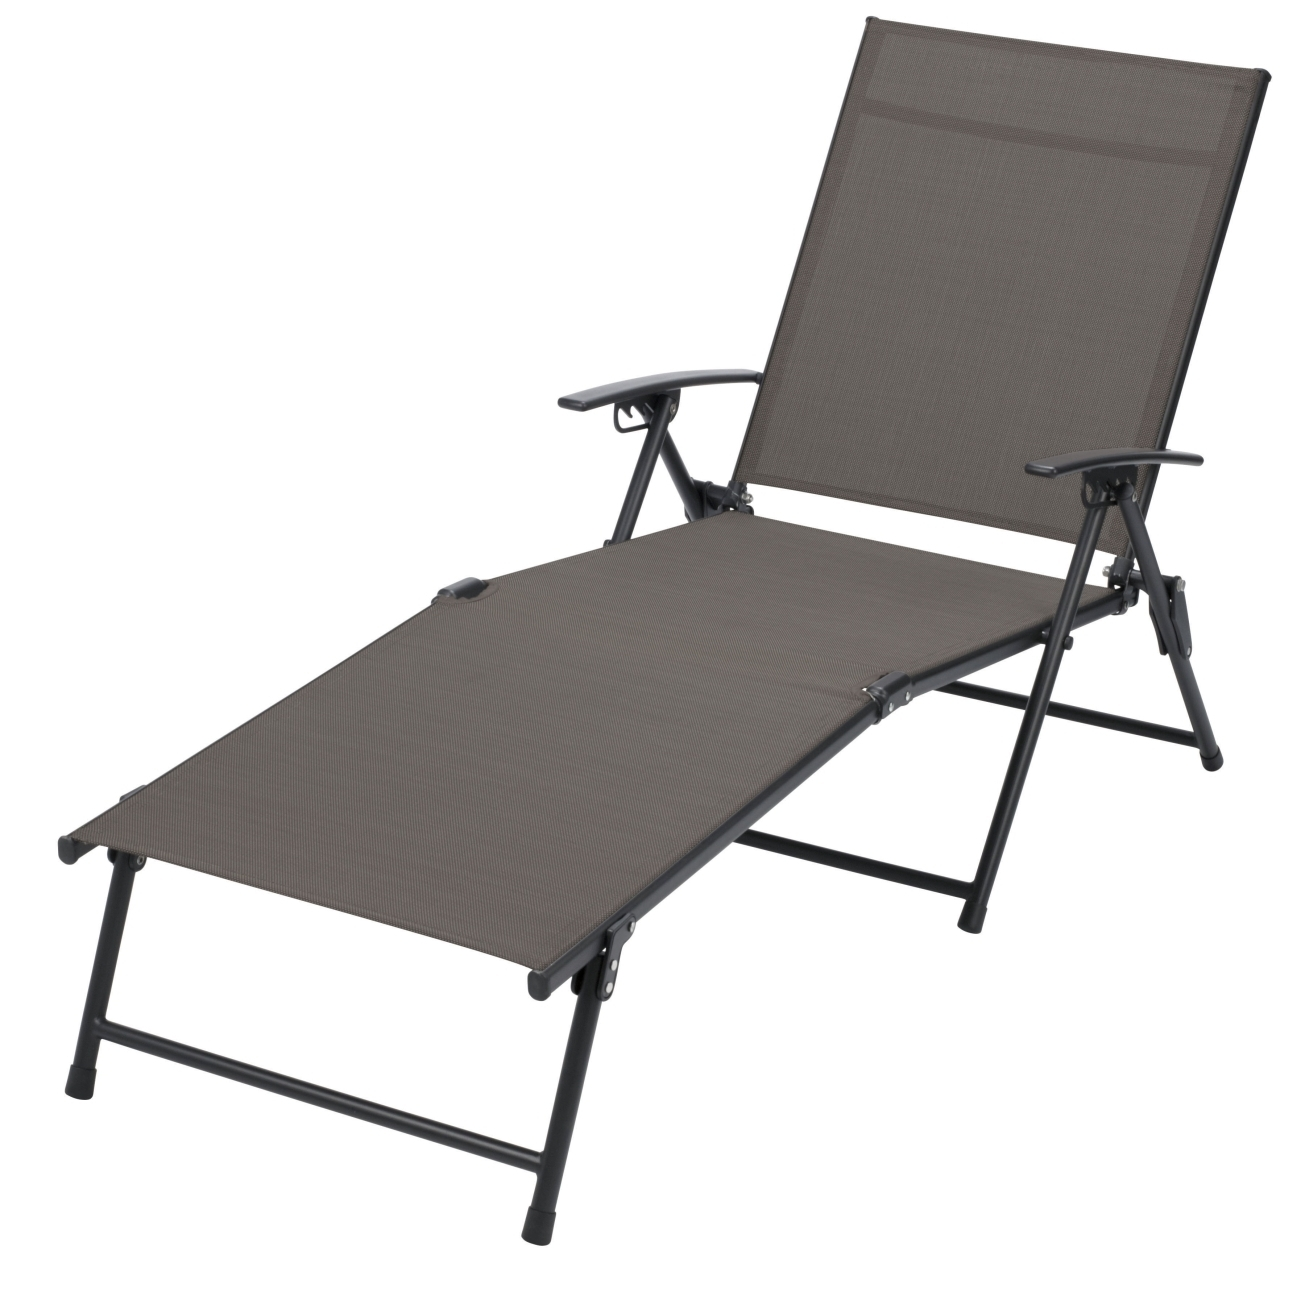 Famous Outdoor Lounge Chairs, Patio & Pool Lounge Chairs At Ace Hardware In Folding Chaise Lounge Lawn Chairs (View 2 of 15)